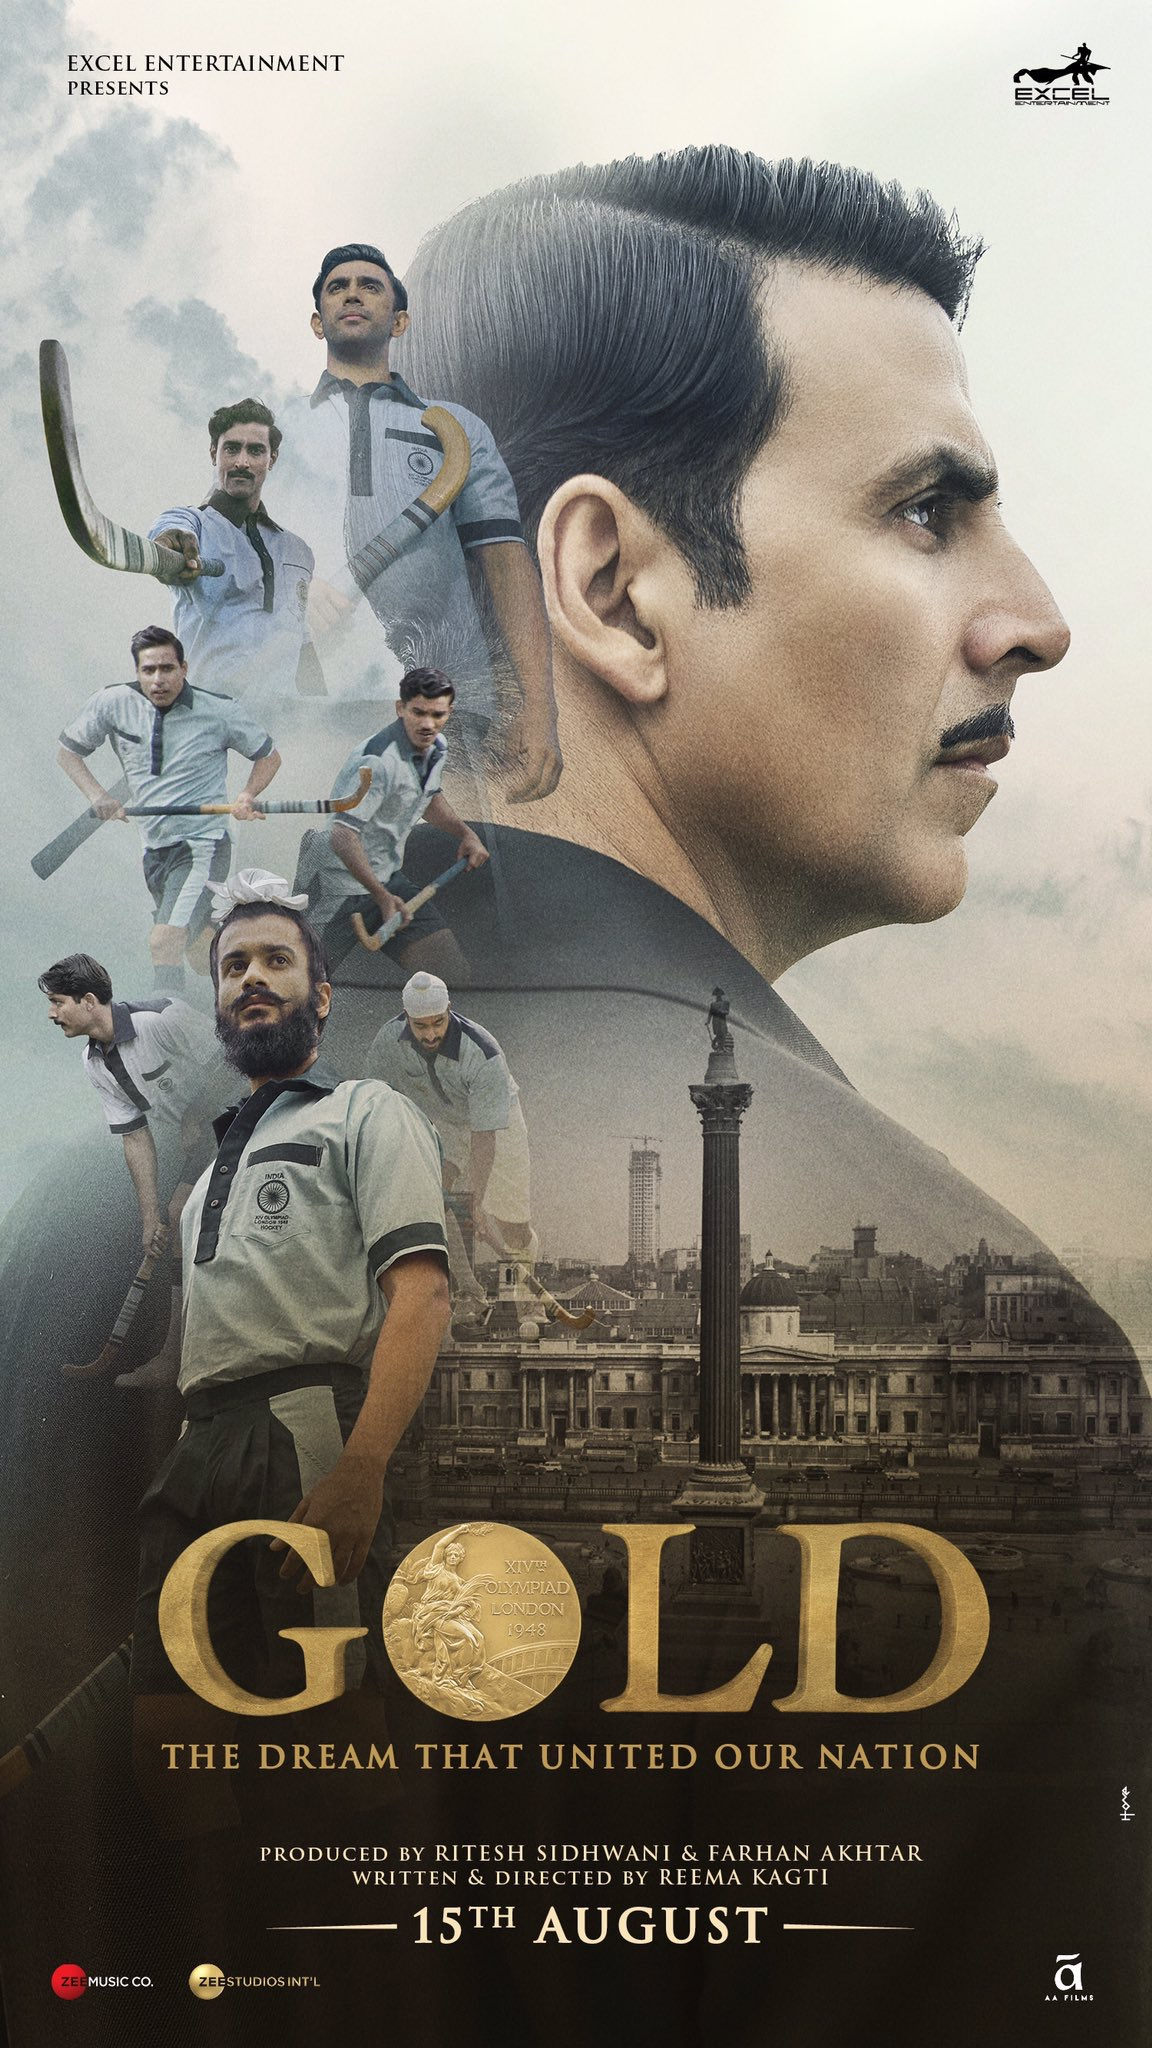 Stand Up for GOLD: New sports drama recounts independent India's first Olympic victory, releasing 15th August 2018